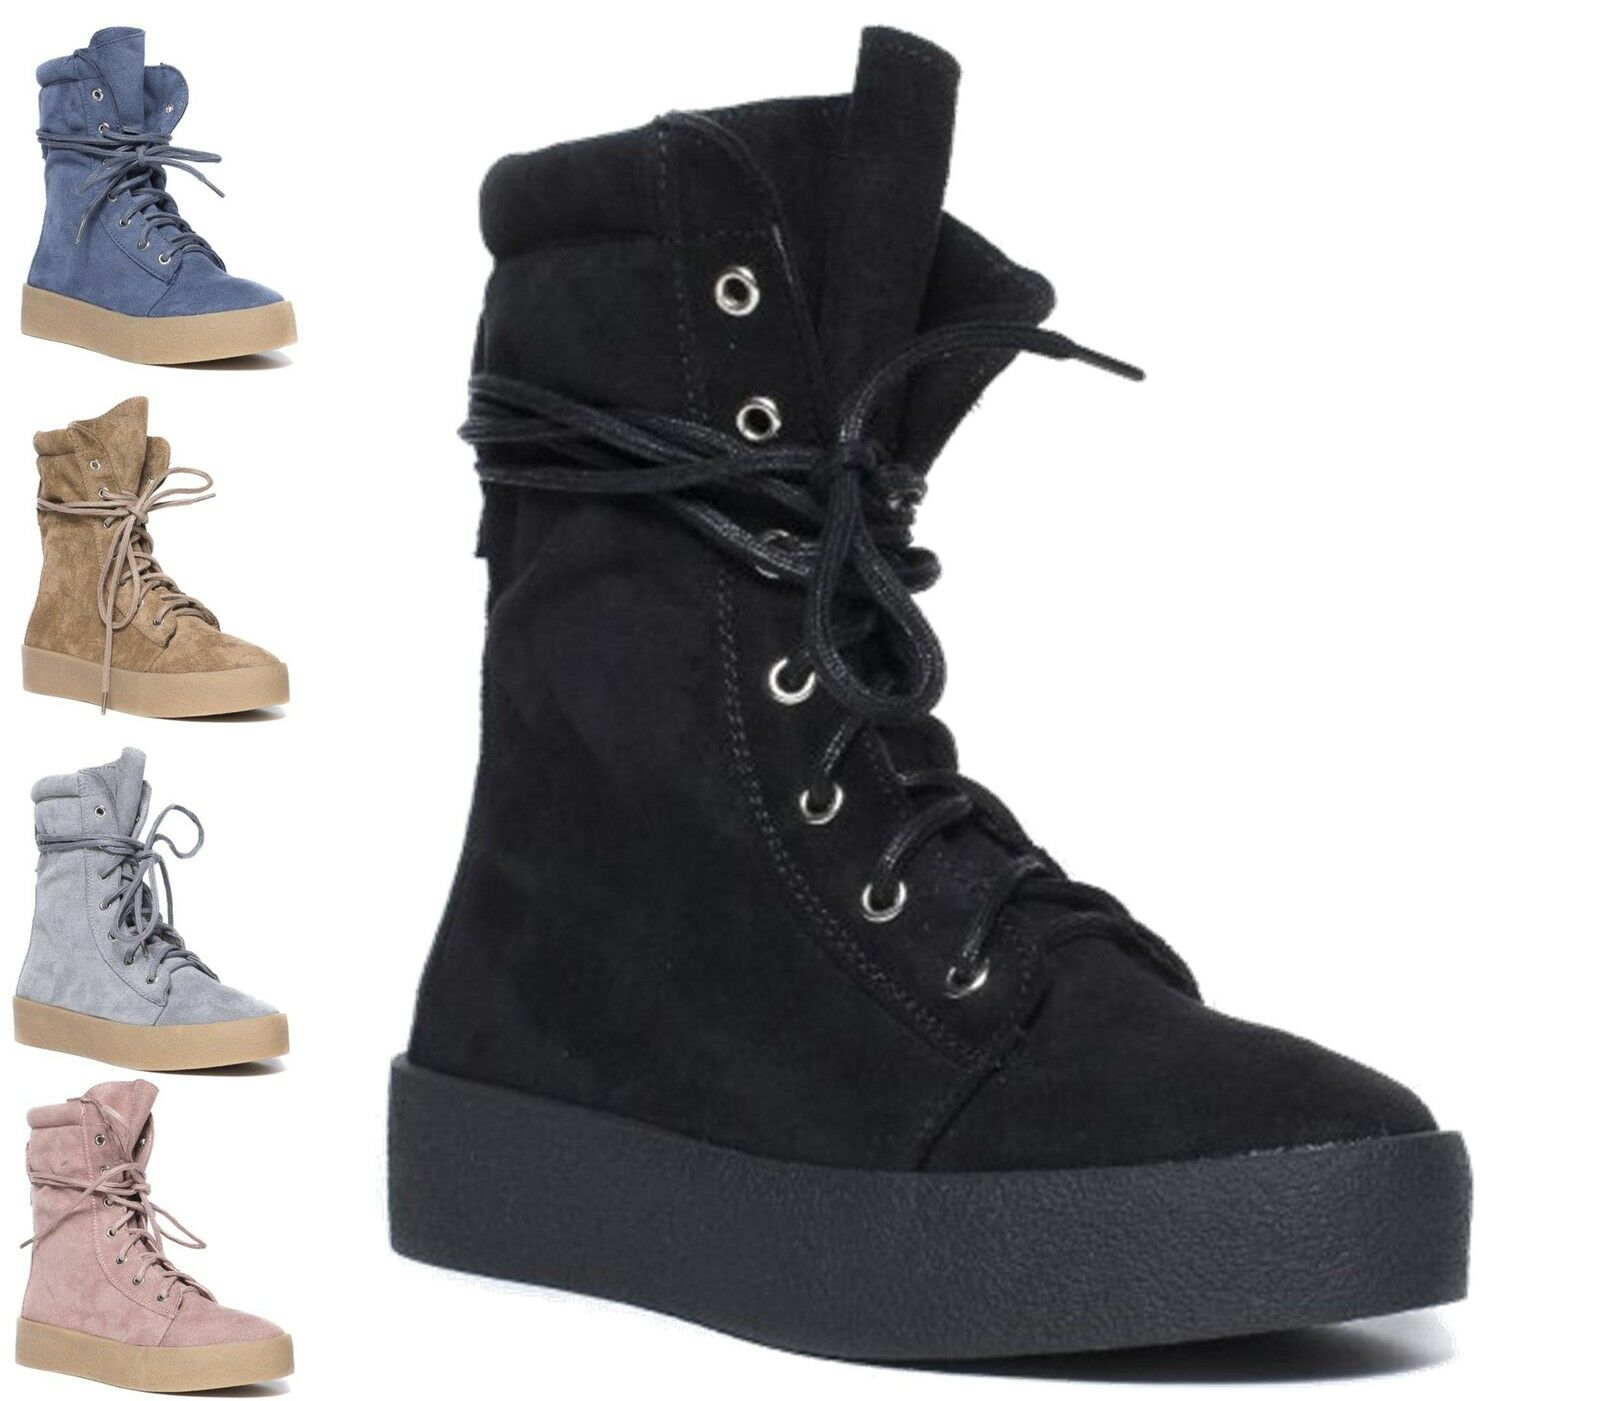 Ladies Flat Casual Ankle Boots Creeper Wedge Lace Up Hi Top Shoes Boots Size 3-8